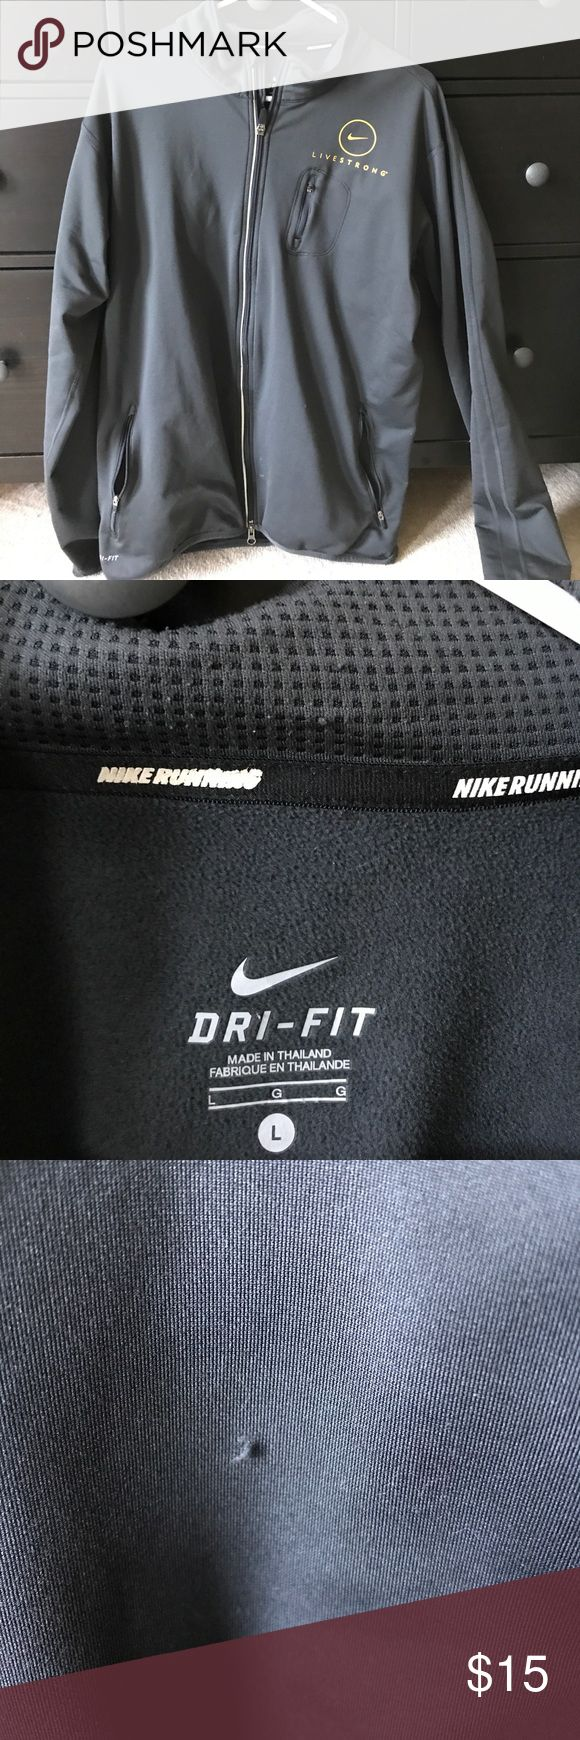 Running Jacket Nike Dri-Fit running jacket. Livestrong branded with one slight snag (shown in last picture) Nike Jackets & Coats Lightweight & Shirt Jackets